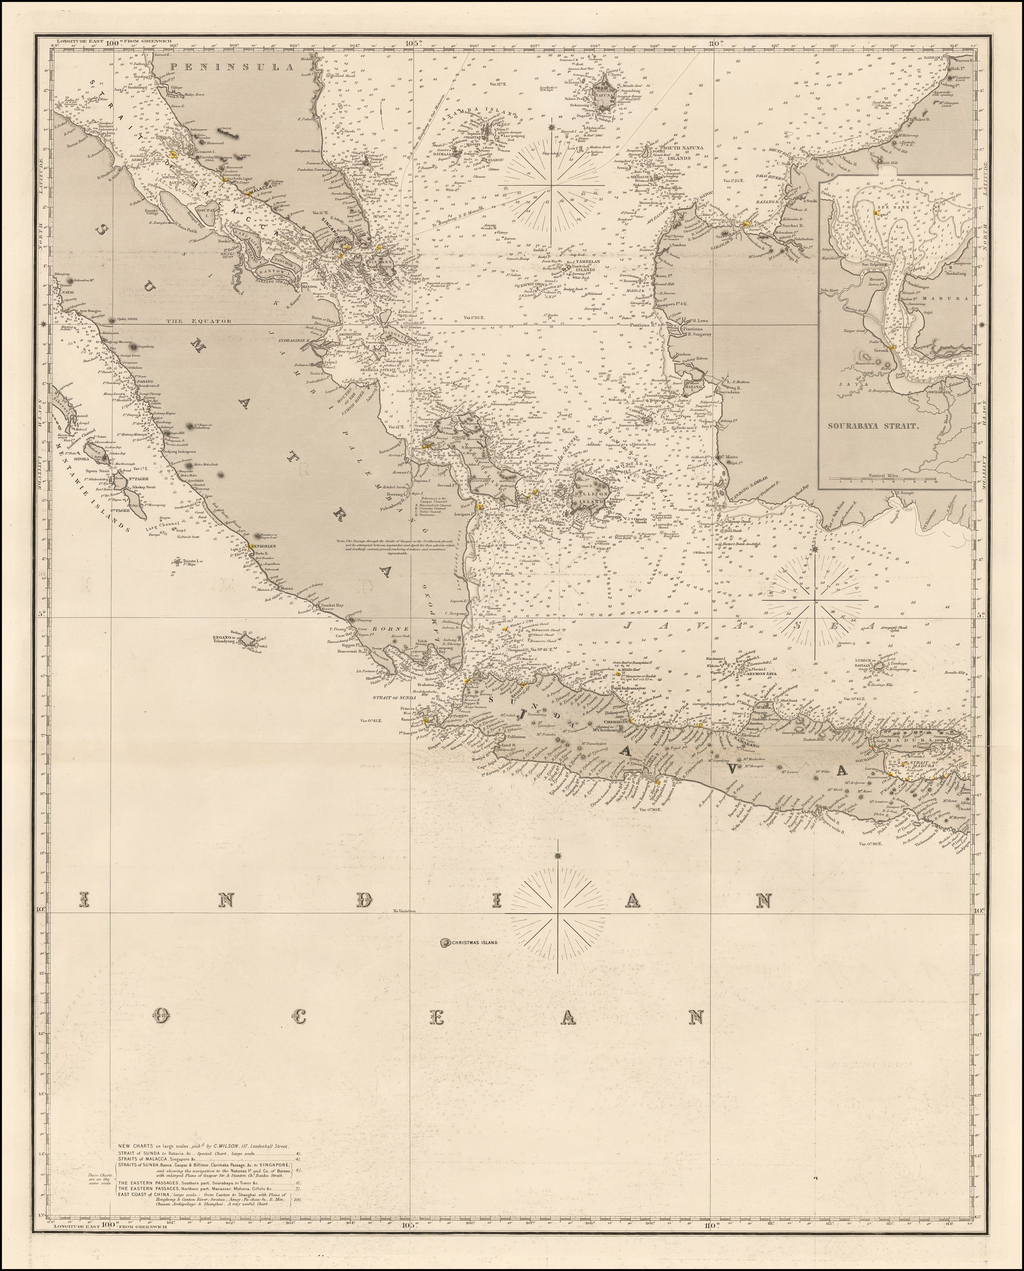 [Straits of Malacca, Sumatra, Java and Western Borneo] By Charles Wilson